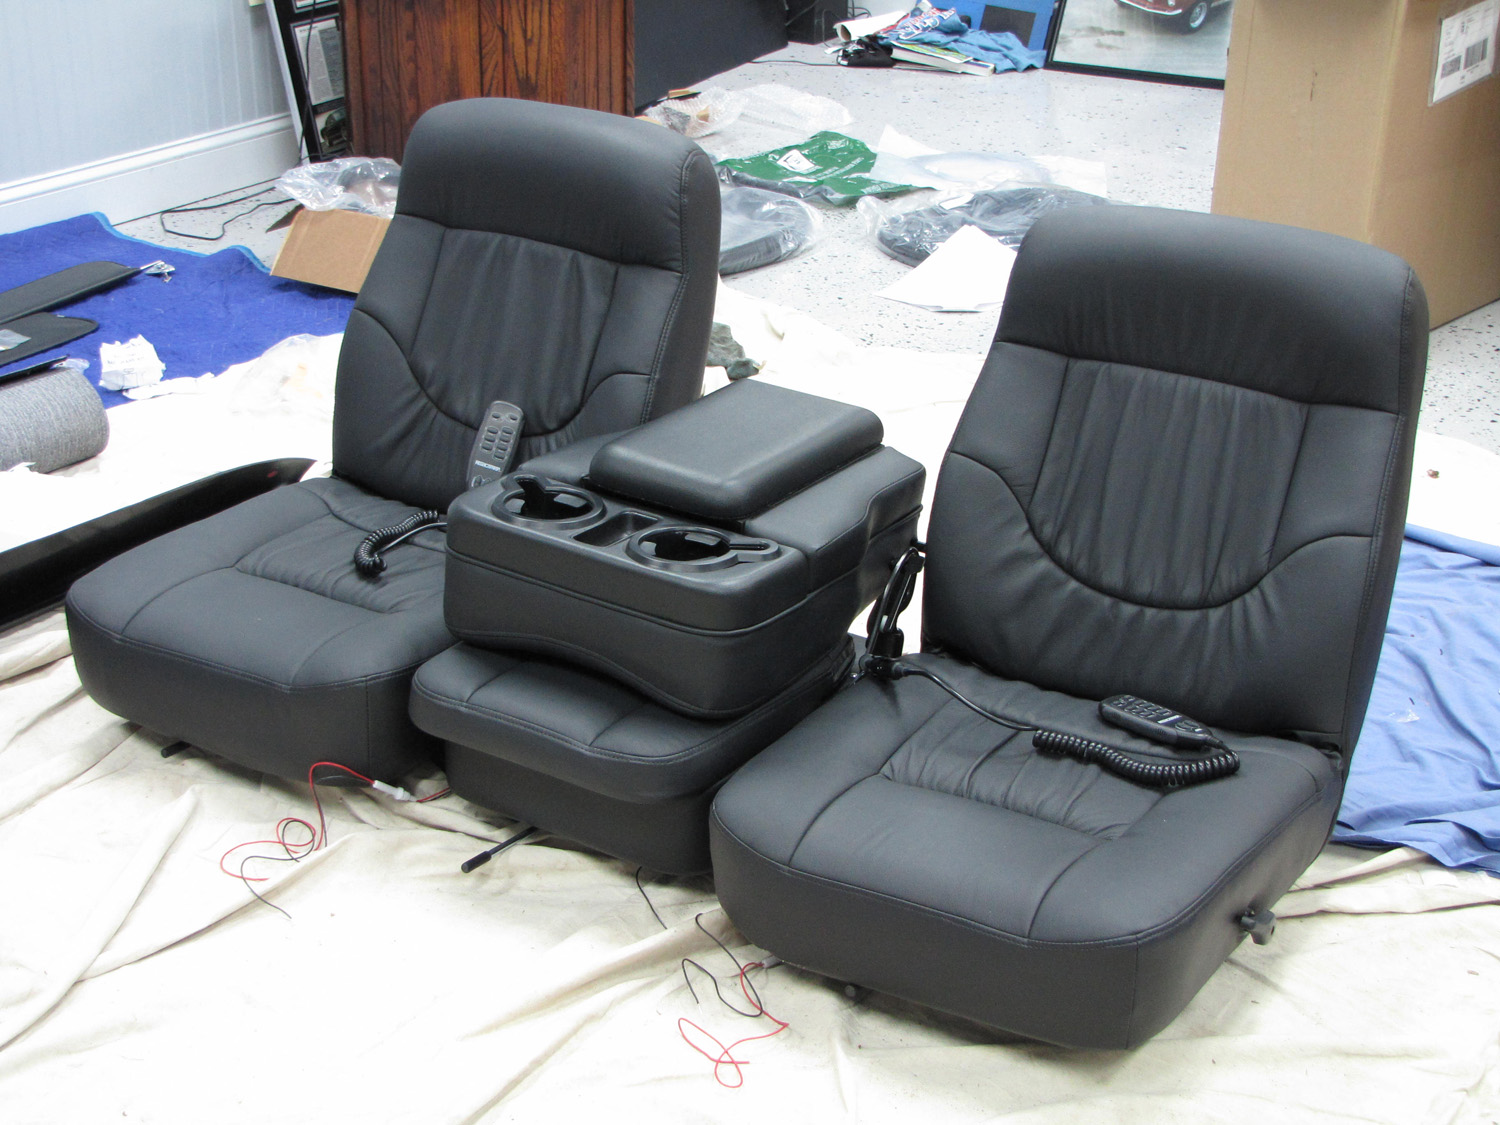 F Powerstroke Seats on rear view mirror camera system